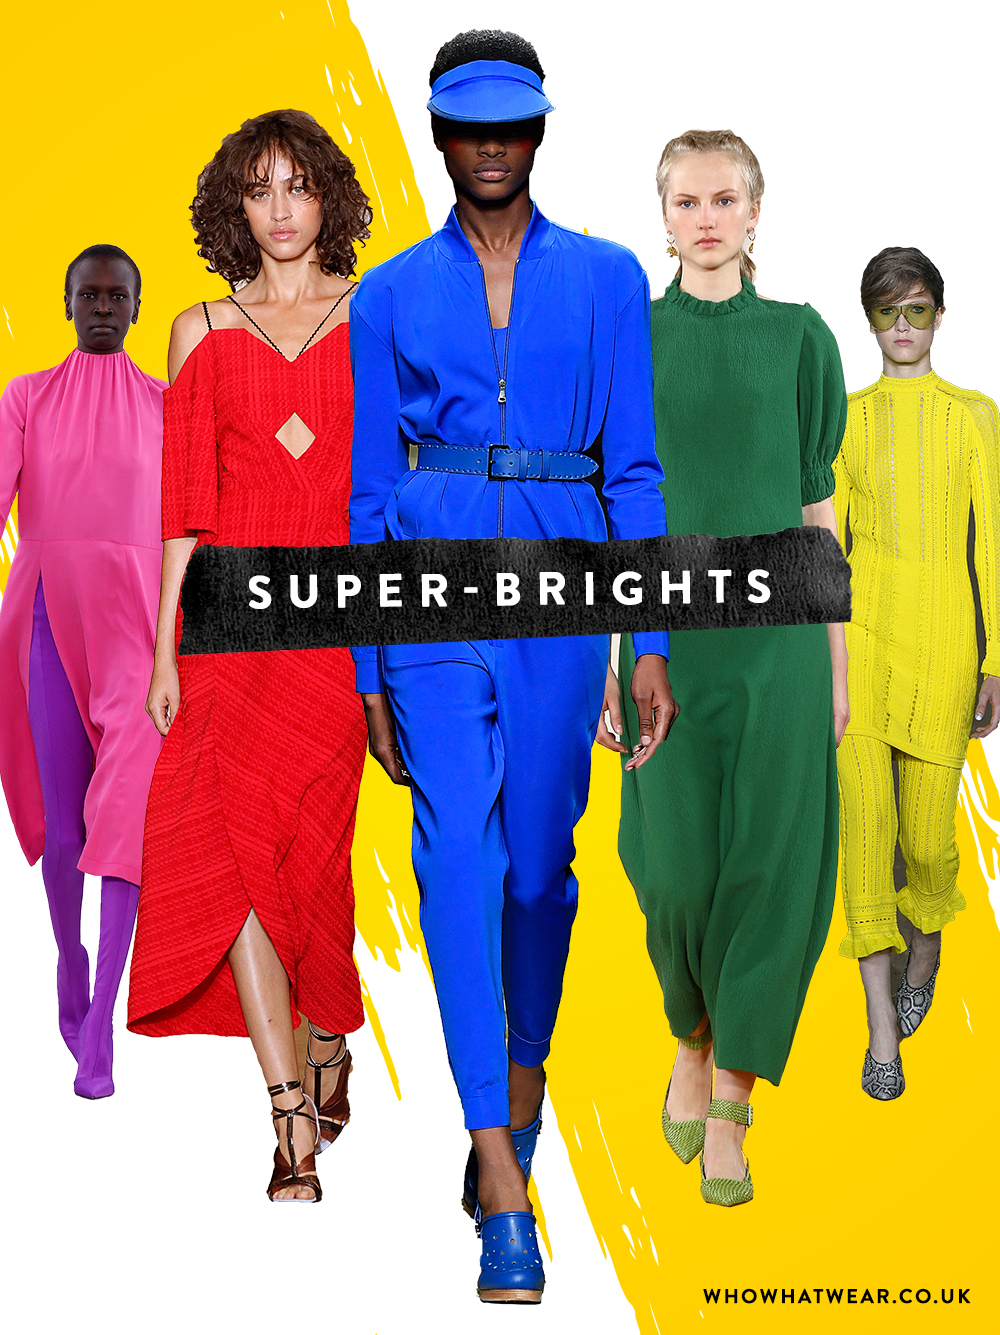 UK-Collage-Super-Brights.jpg